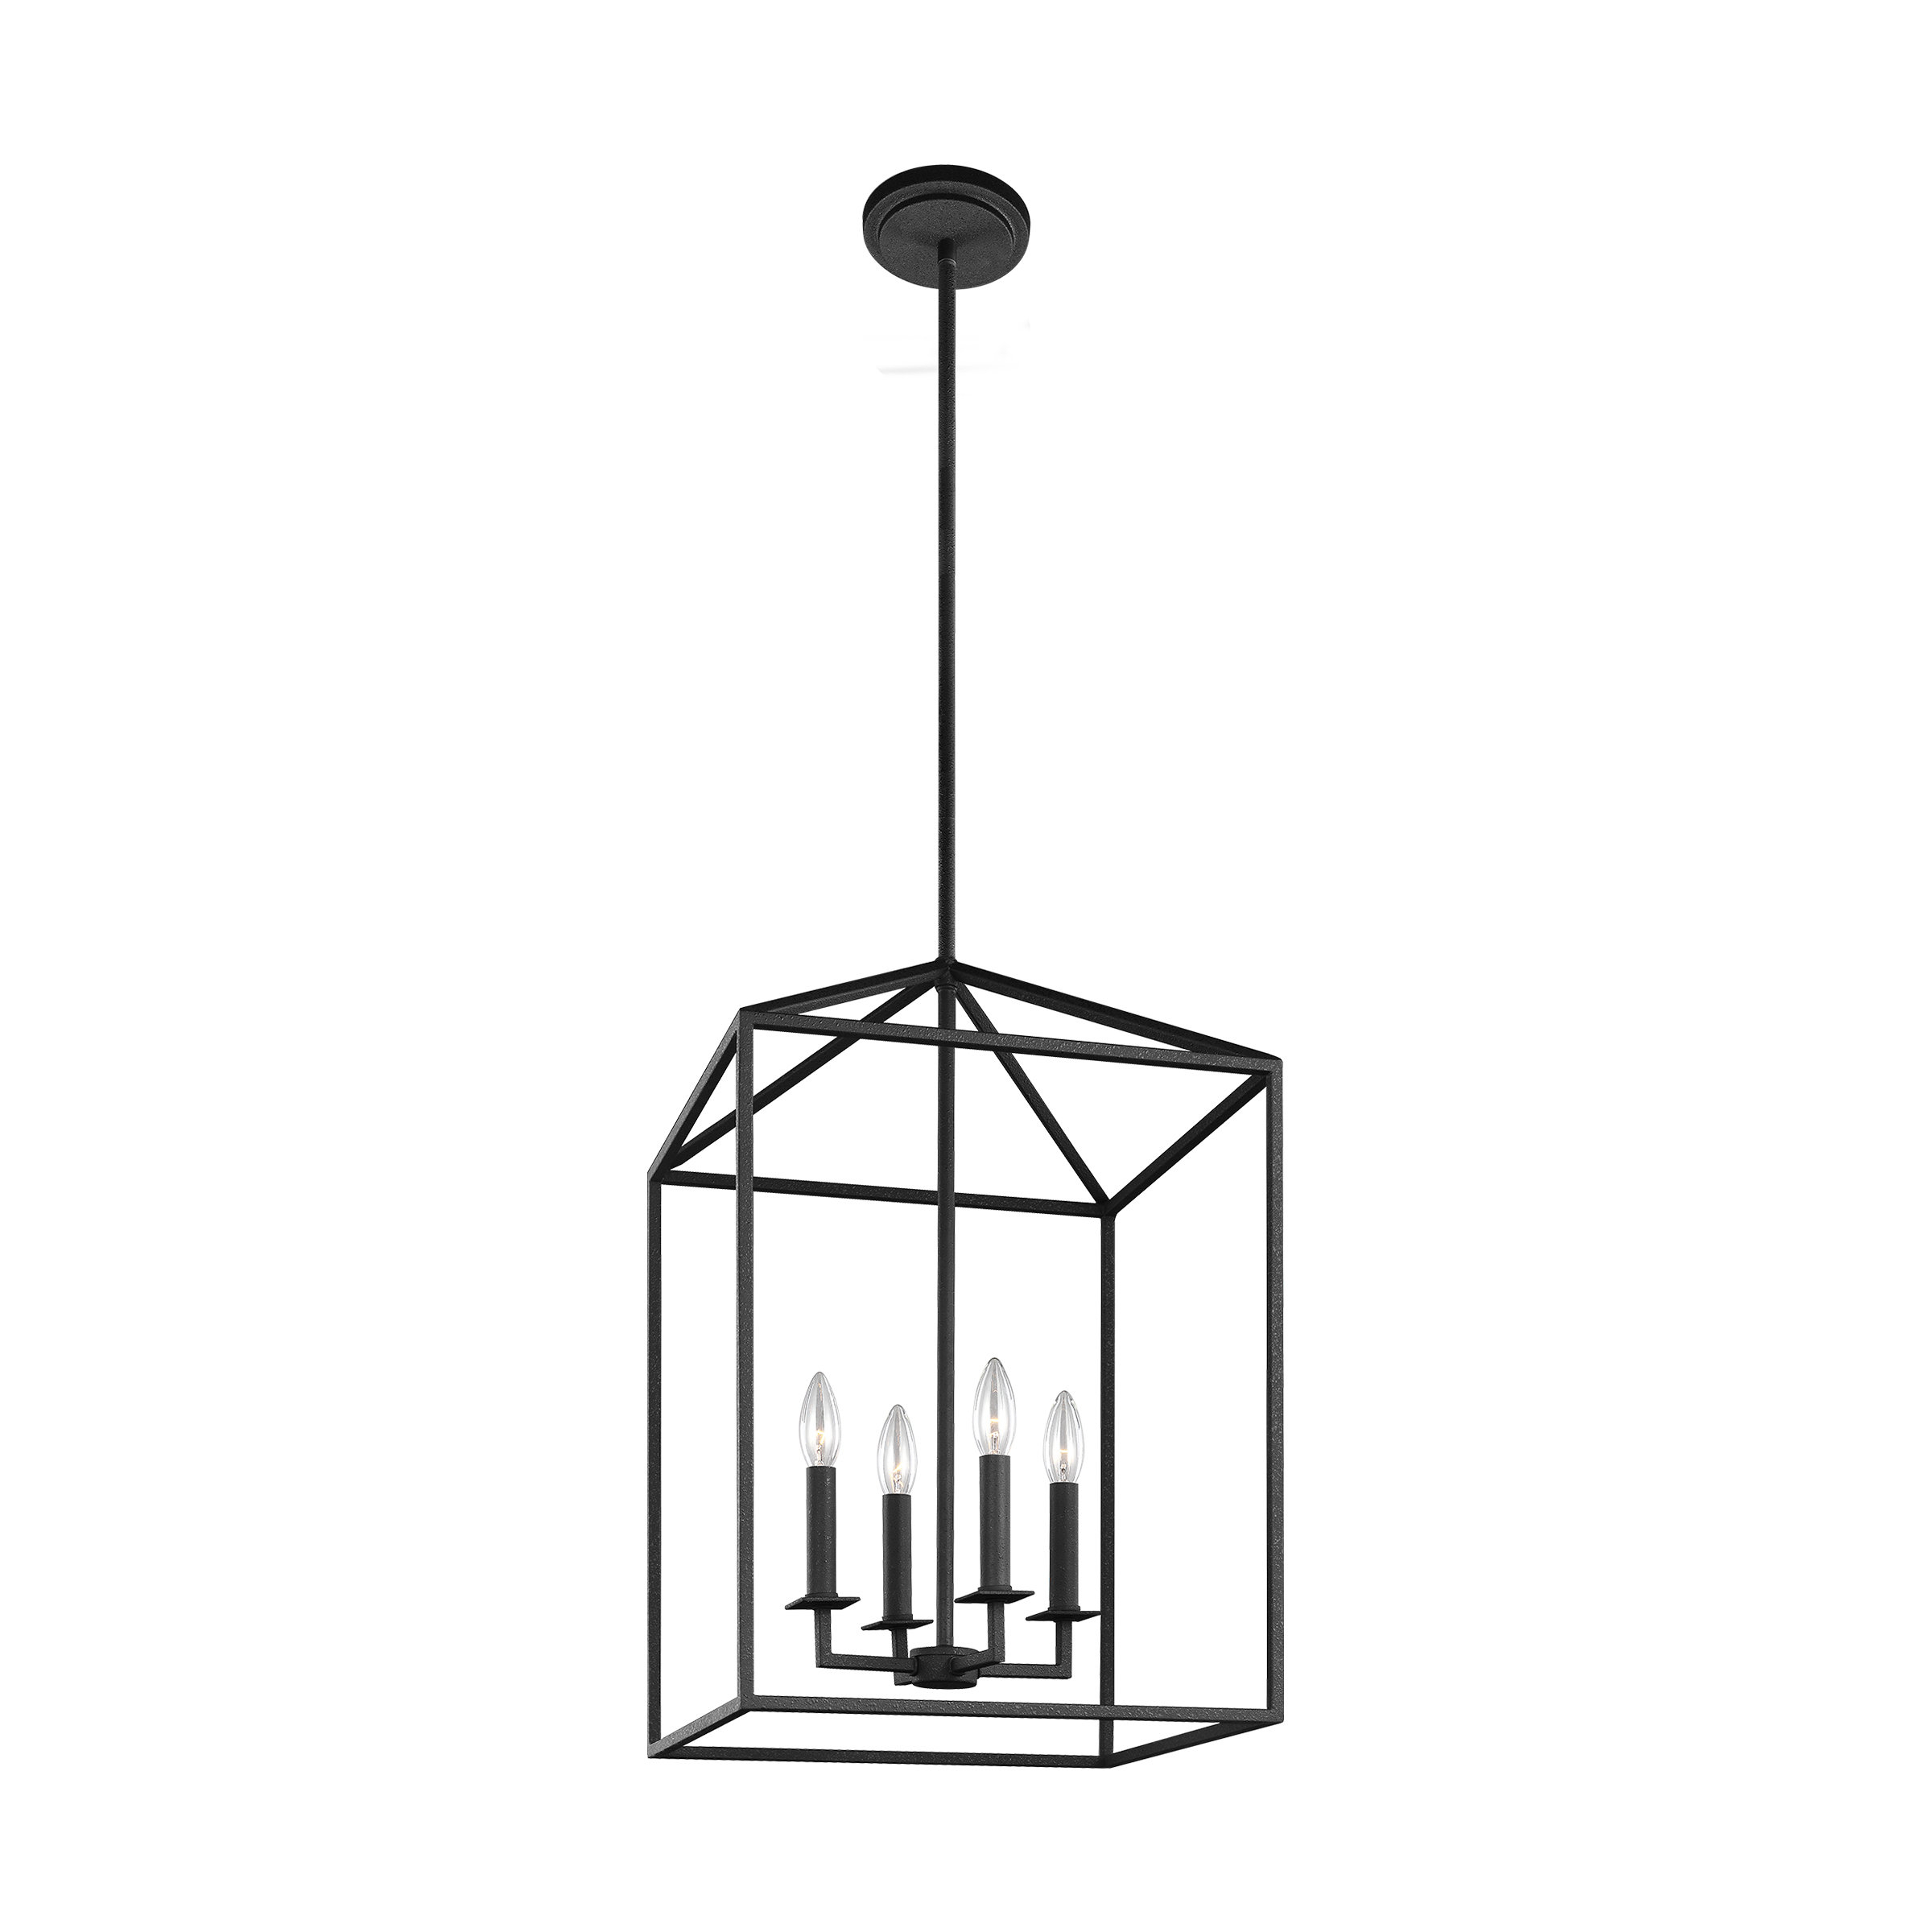 Odie 4 Light Lantern Square/rectangle Pendant With Regard To Odie 4 Light Lantern Square Pendants (View 19 of 30)